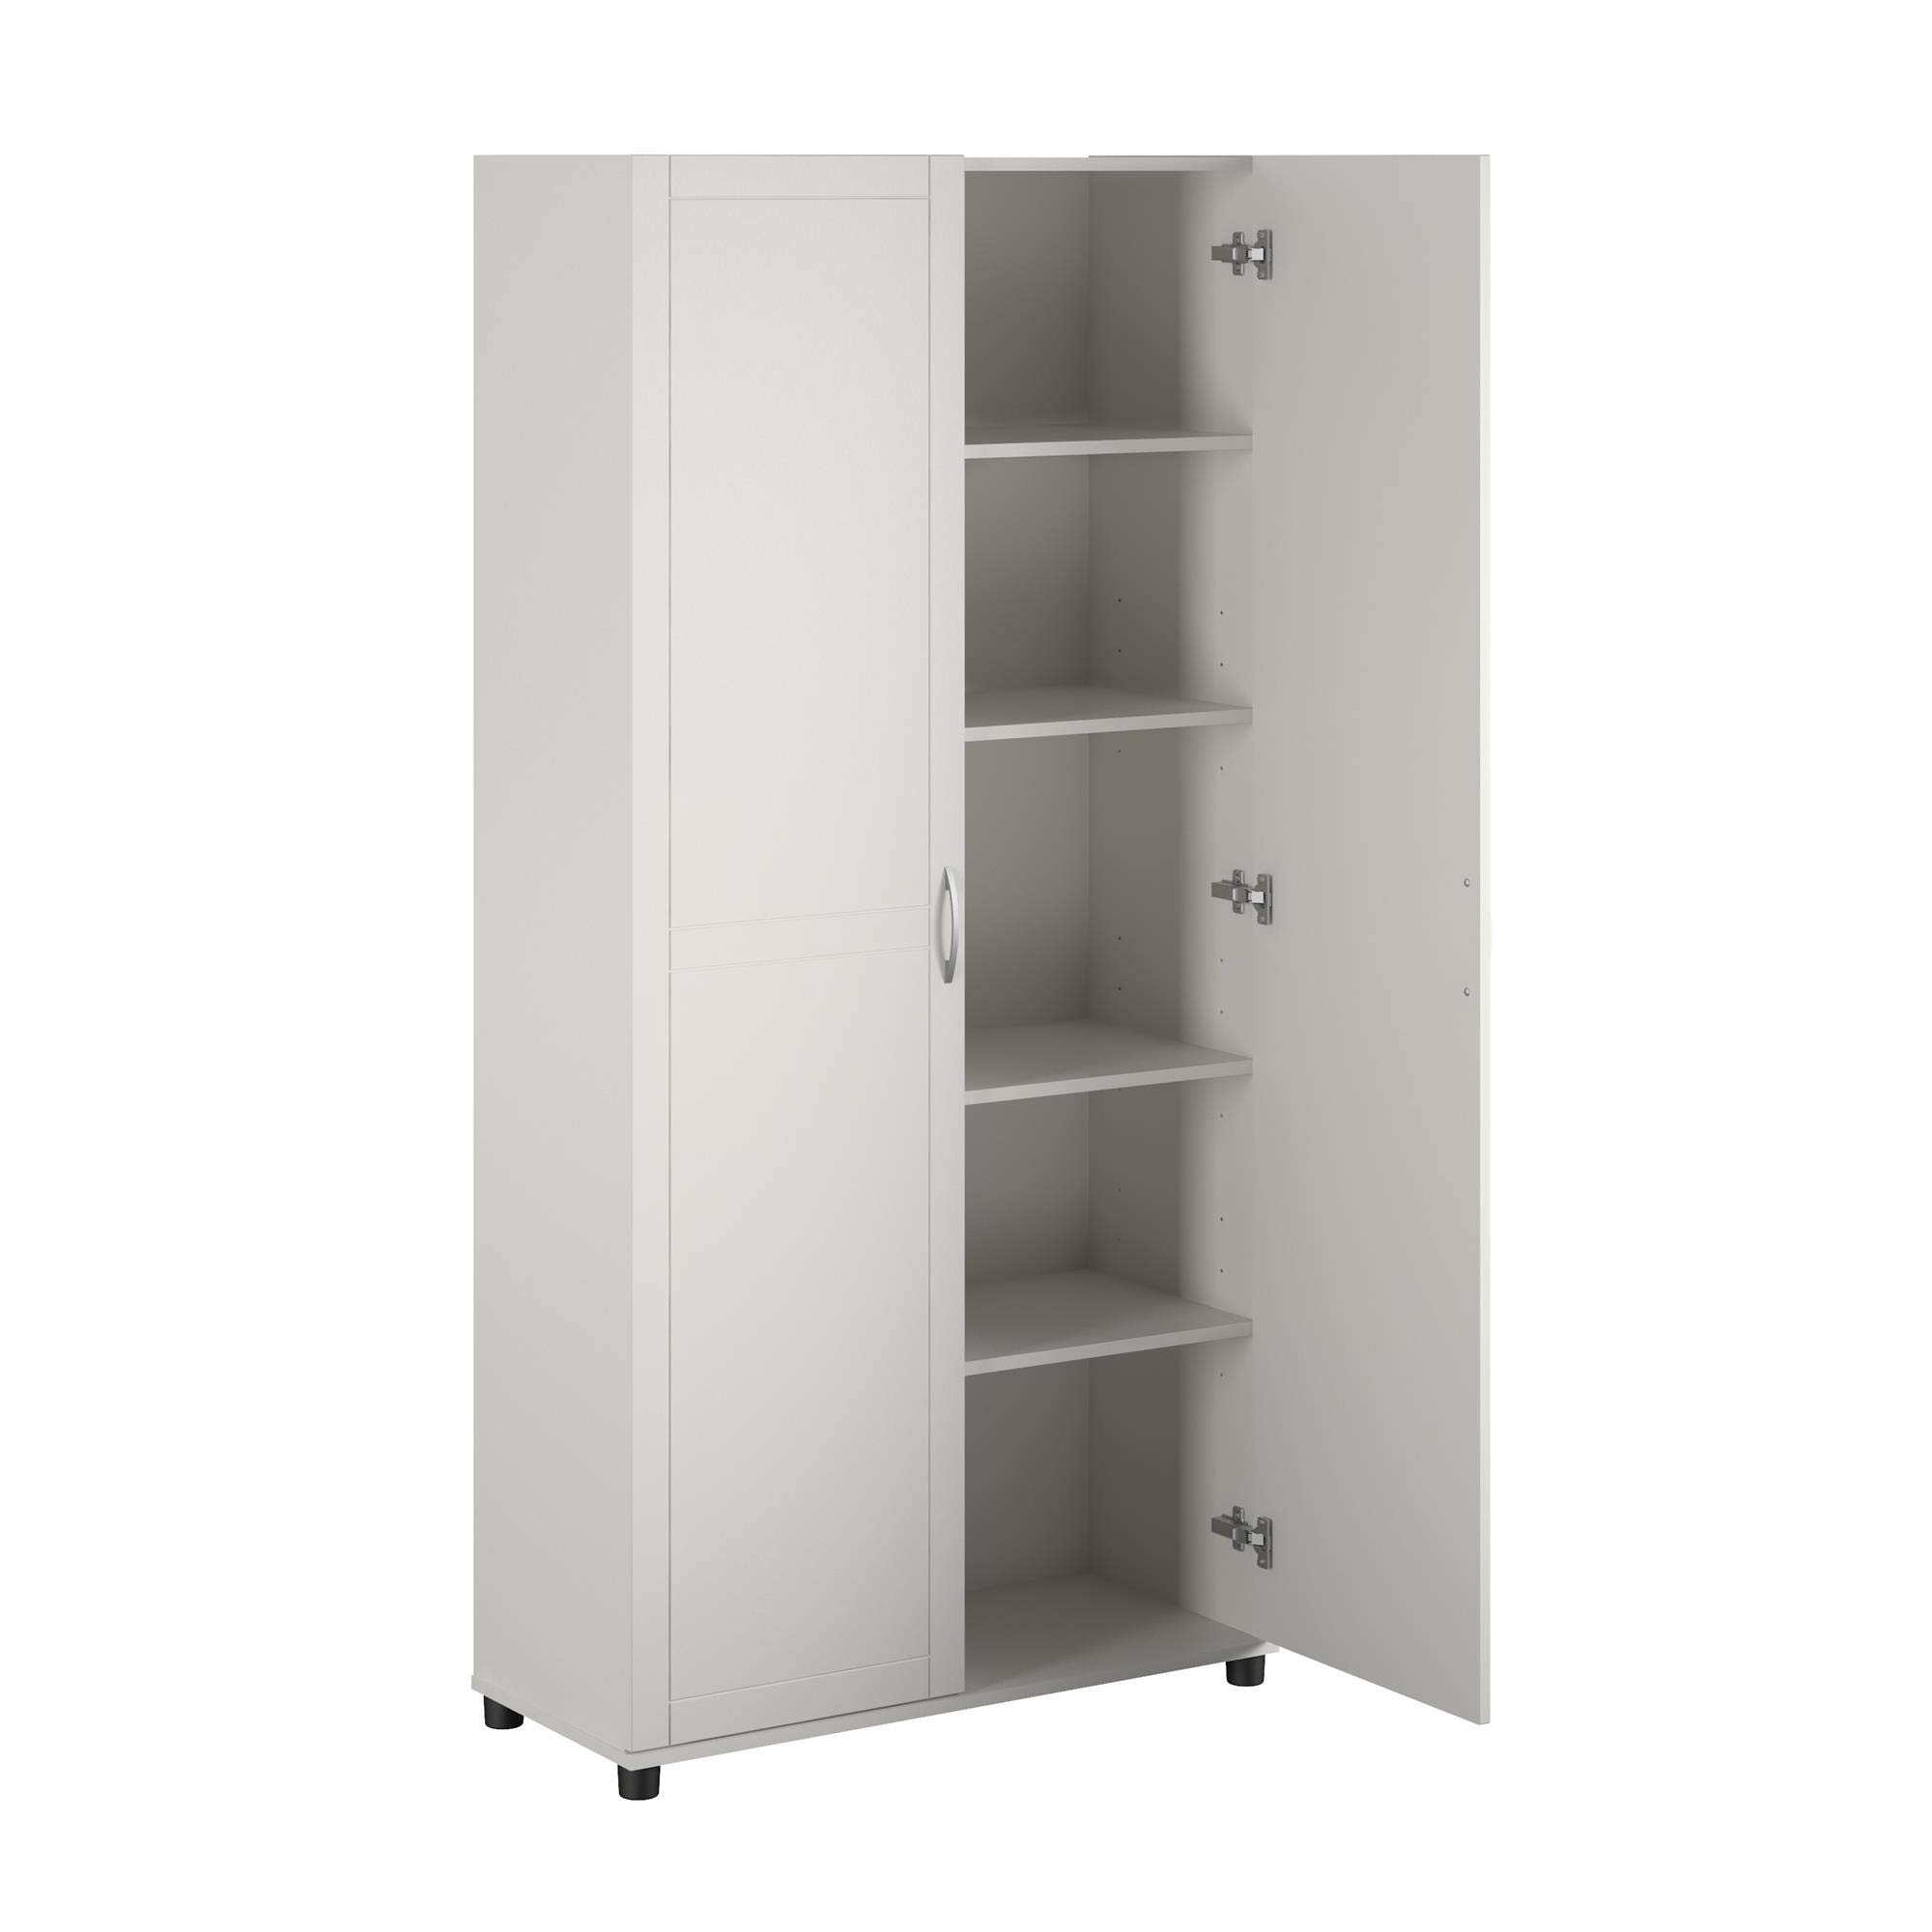 SystemBuild Callahan Storage Cabinet 36'' White by SystemBuild